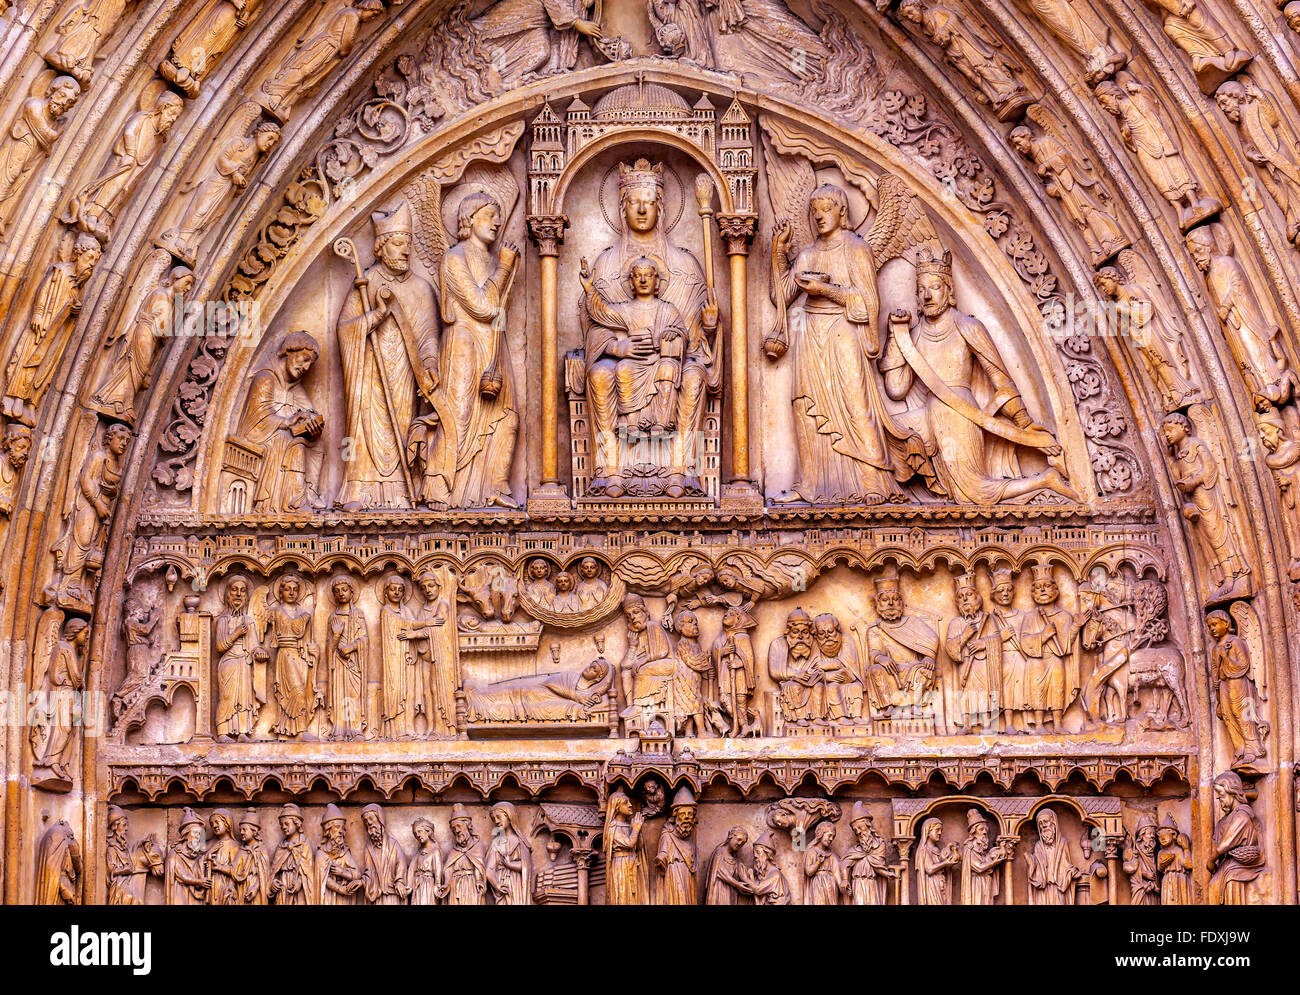 Saint Anne Door Biblical Statues Virgin Mary Baby Jesus Bishop Angels Notre Dame Cathedral Paris France. Stock Photo